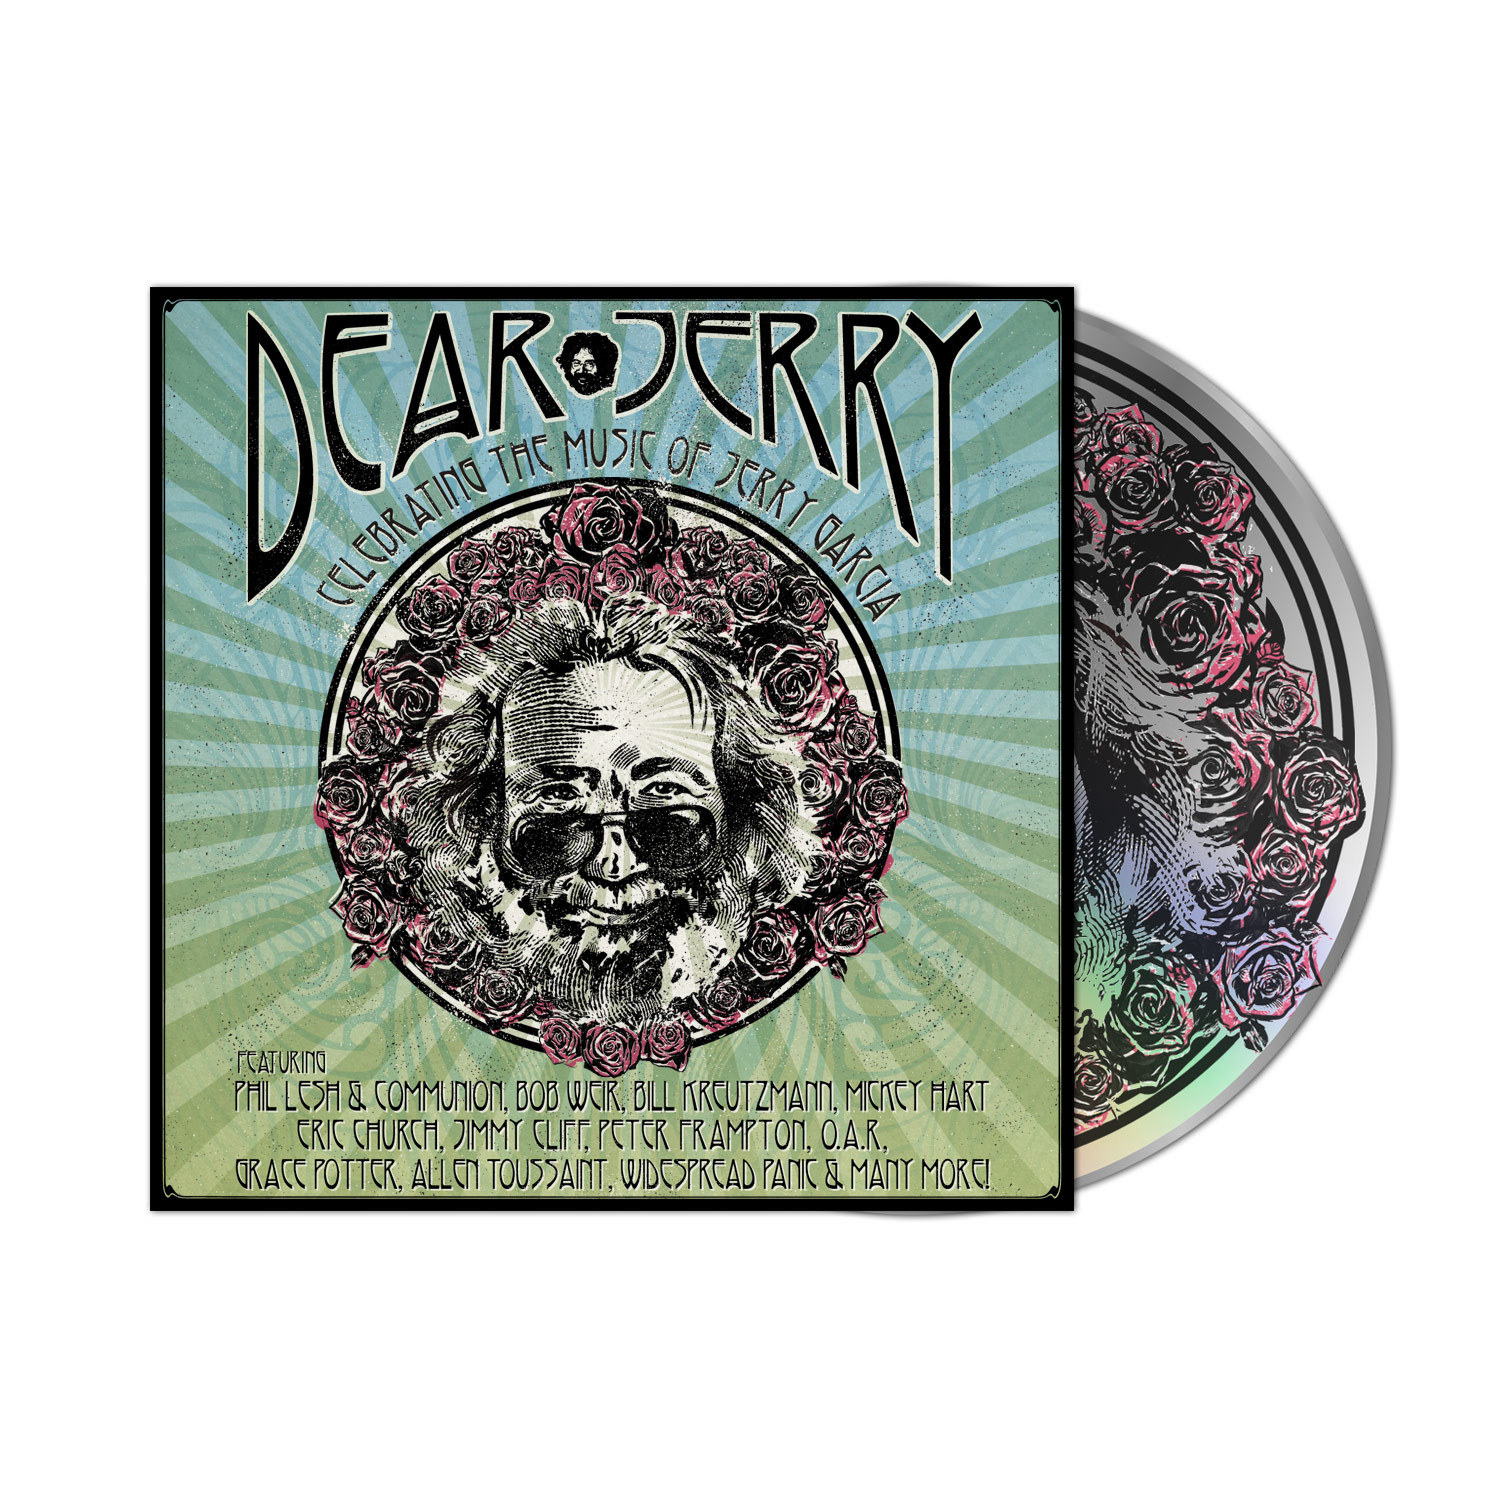 Dear Jerry: Celebrating The Music Of Jerry Garcia [DVD]